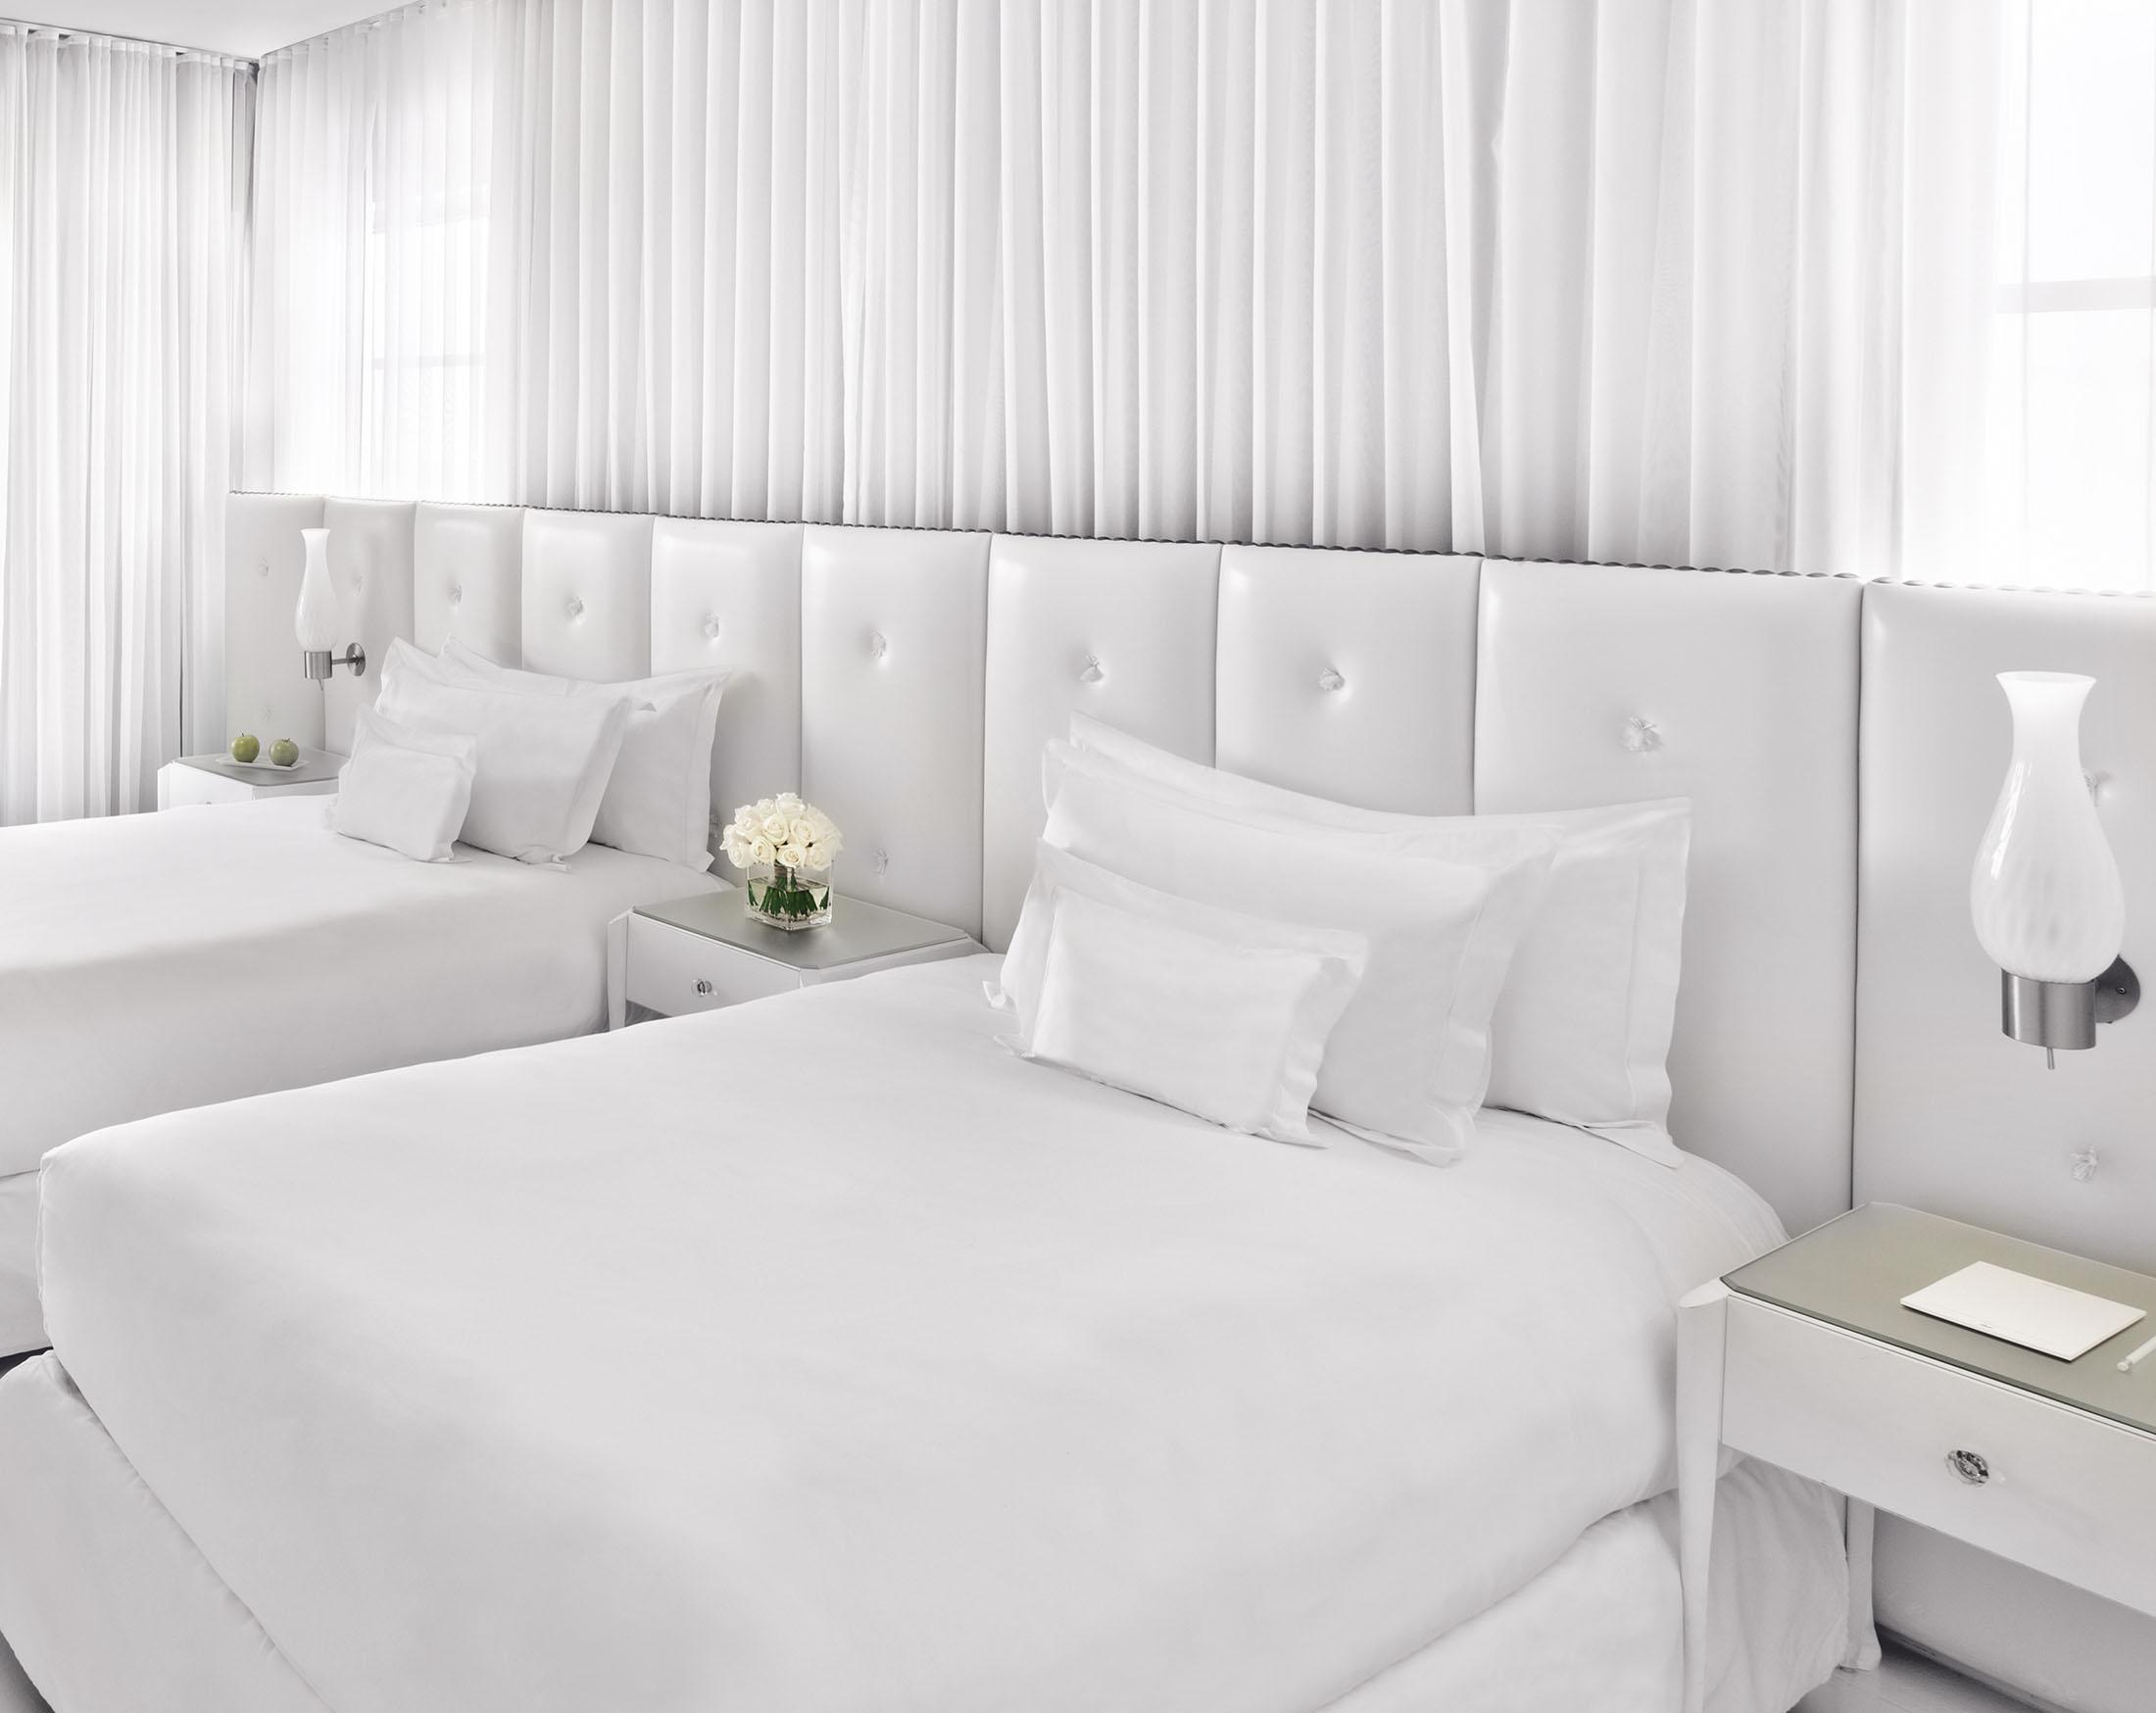 Two comfortable white beds in white room